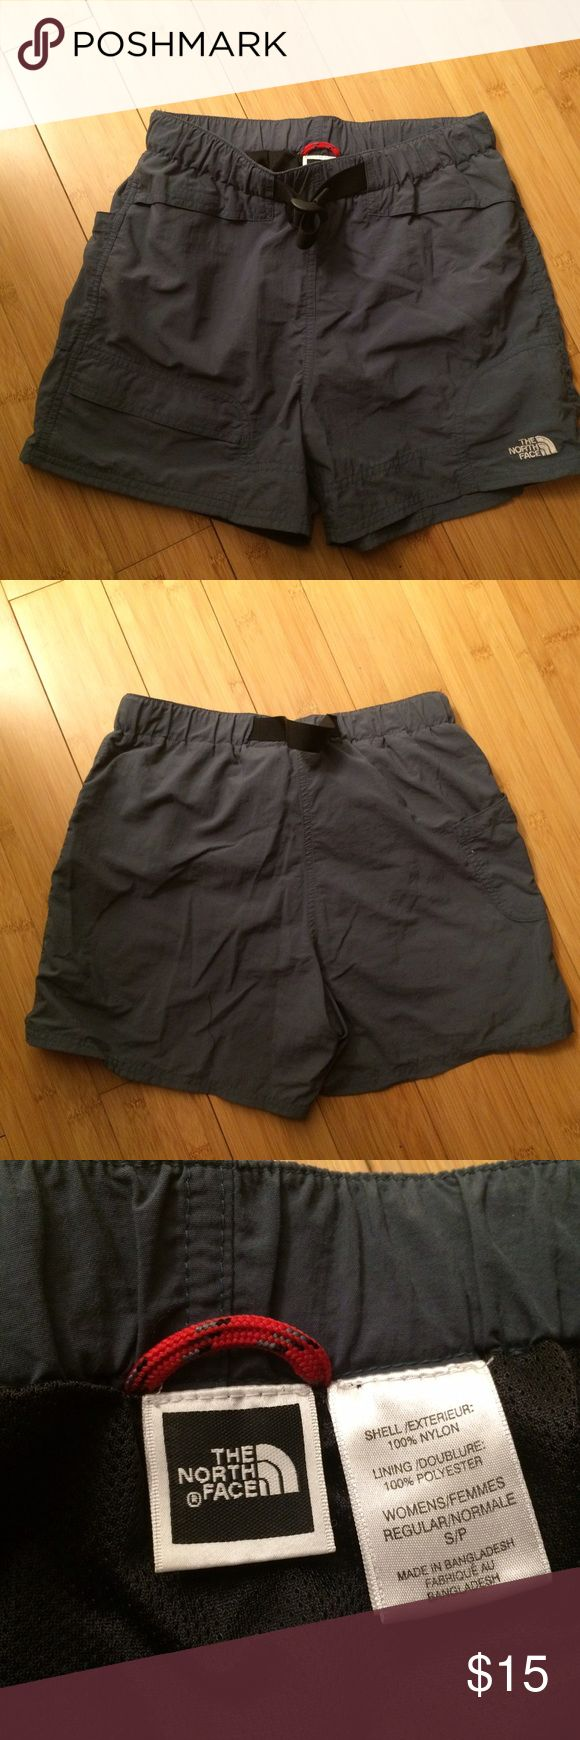 North Face hiking shorts North Face hiking shorts. Women's size small. Blueish gray color. North Face Shorts Cargos